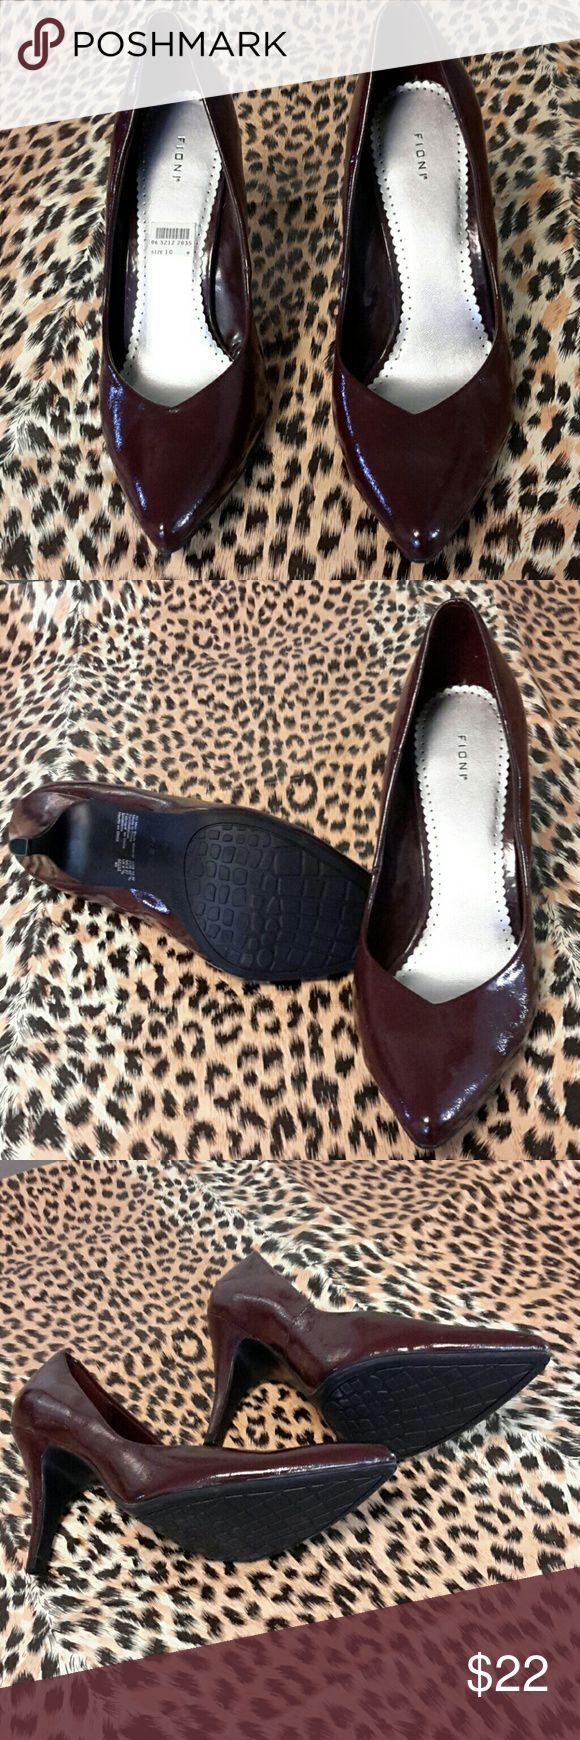 Dark red/ wine color high hills by Fioni.. Wine in color dark red size 10 high hills great condition.. but... on left shoe and left a ice on front the have a few very small white dots... see pics please.. all else is new and not worn. Shoes Heels